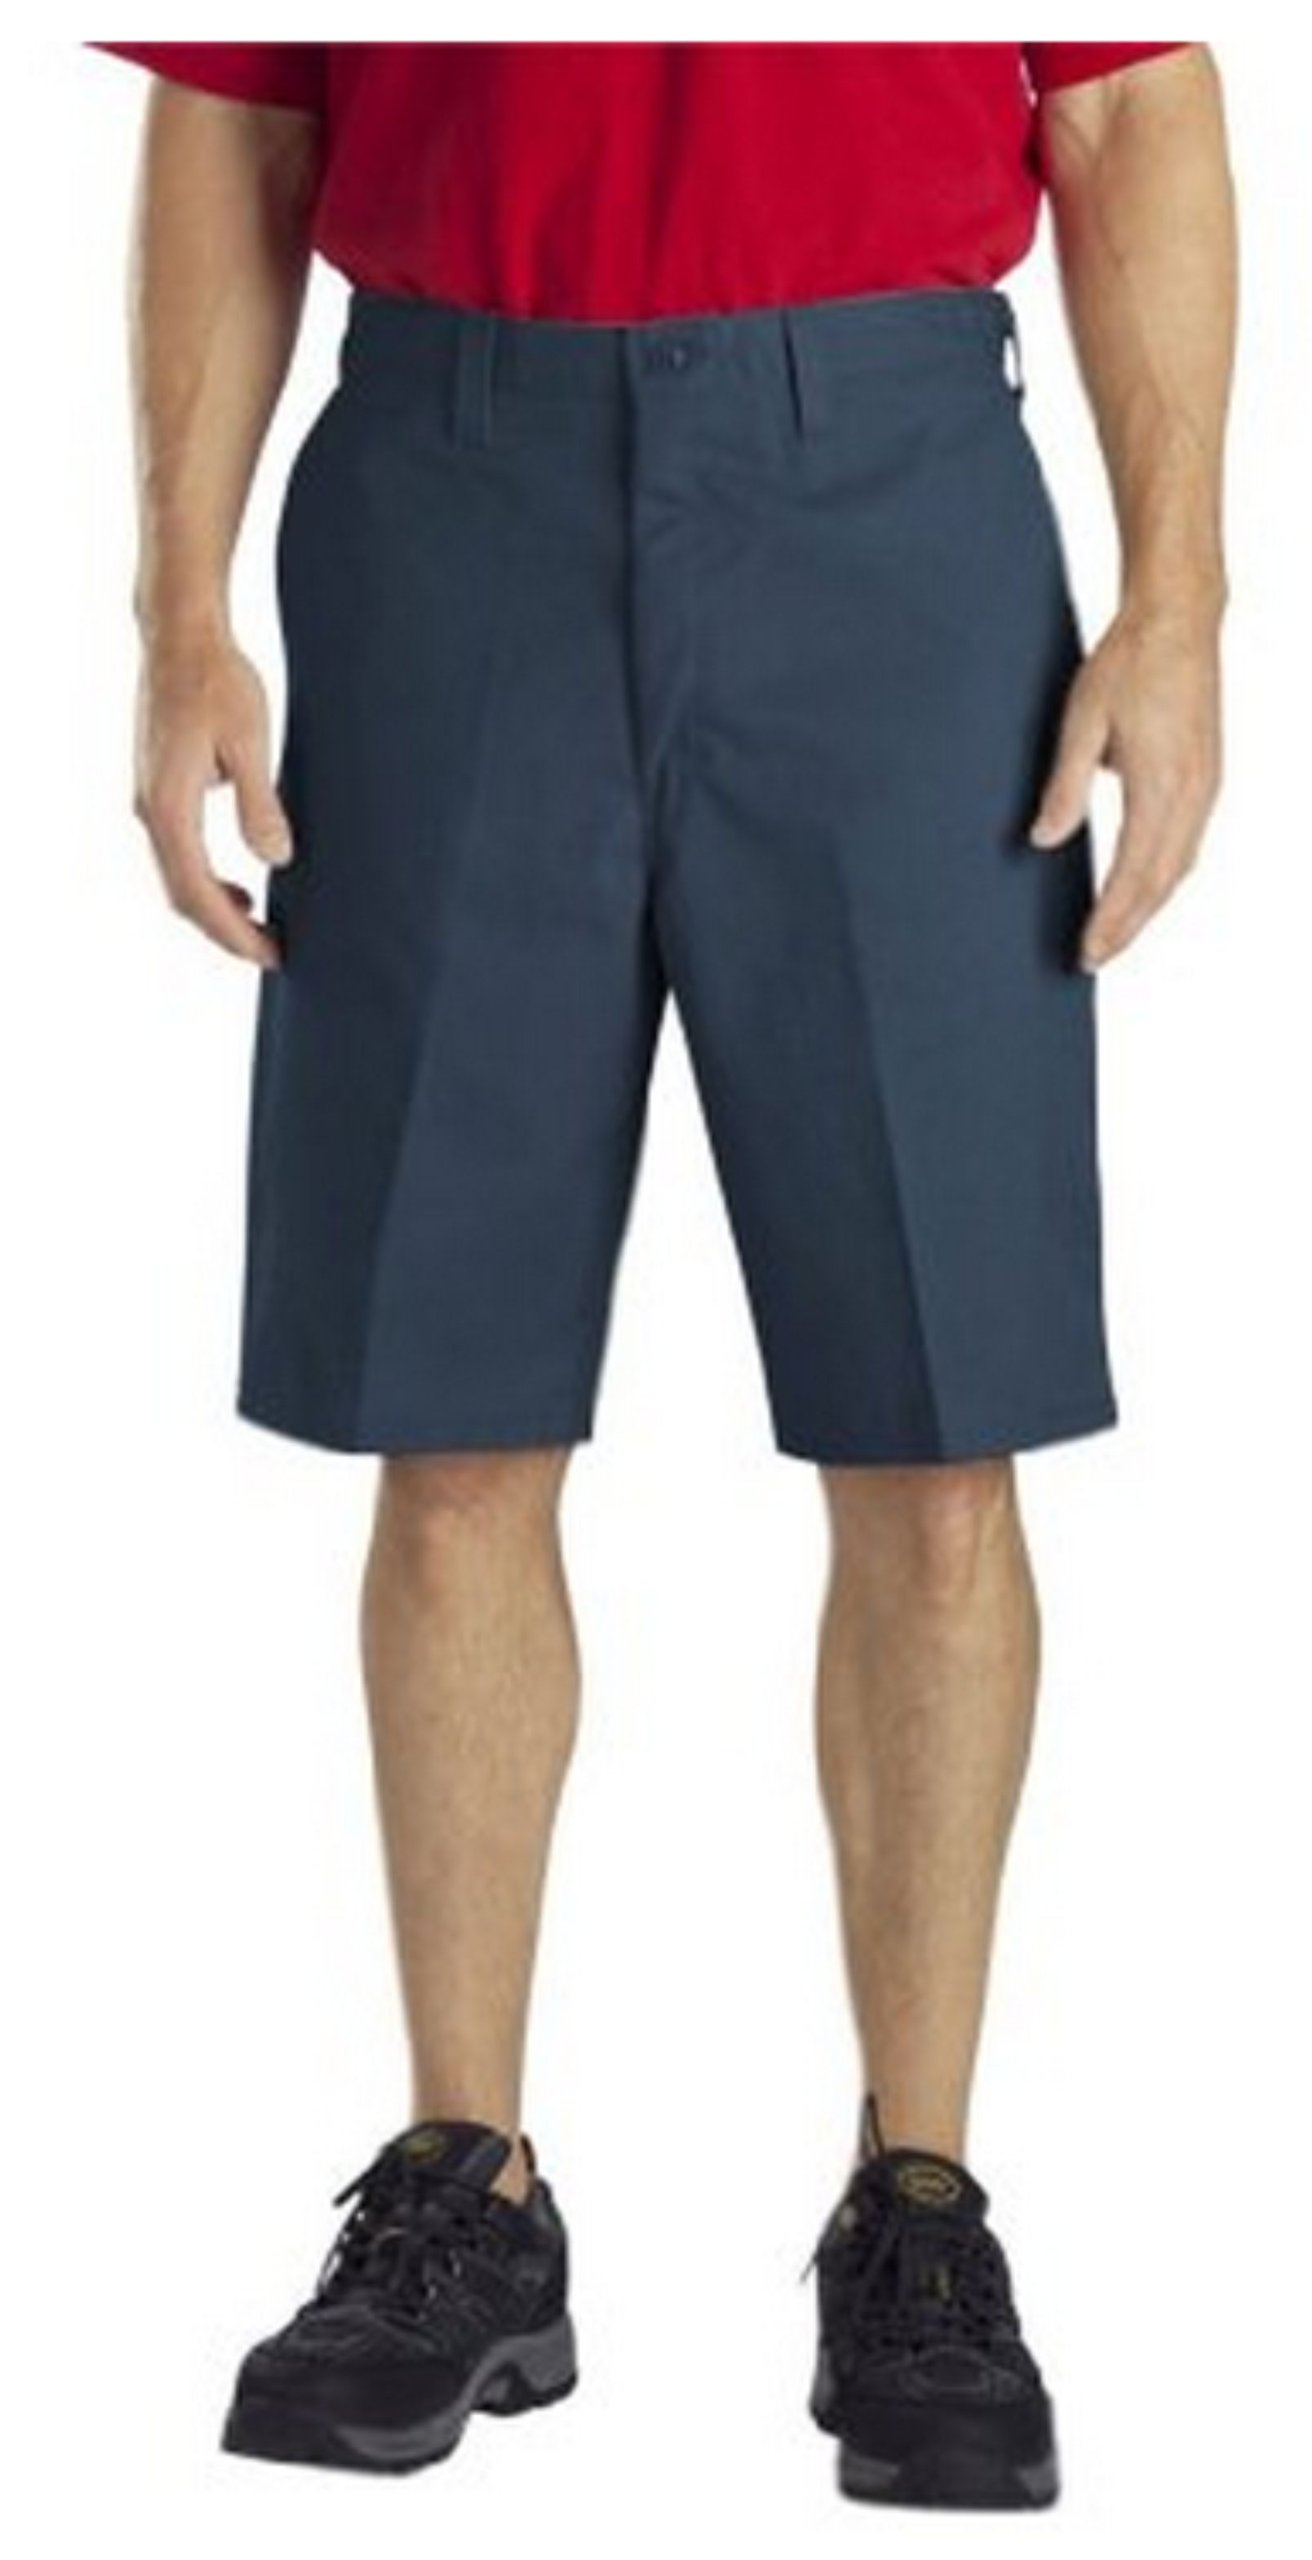 Dickies Occupational Workwear LR337NV 36 Cotton Relaxed Fit Men's Industrial Cargo Short with Metal Tack Closure, 36'' Waist Size, 11'' Inseam, Navy